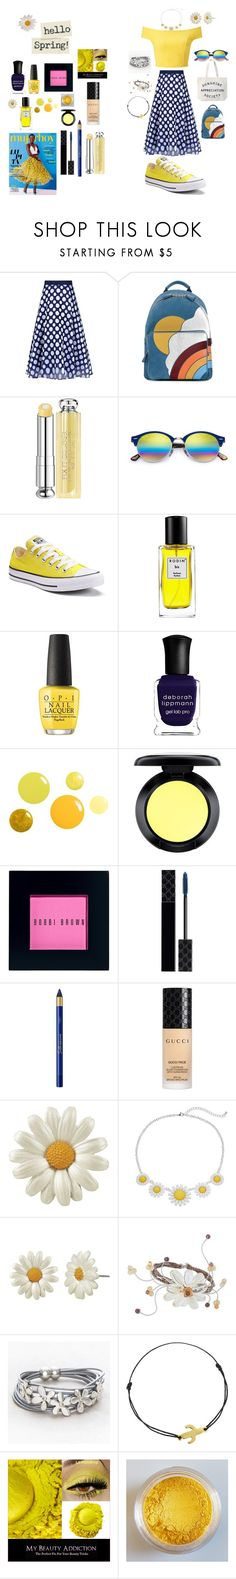 """Hello Sunny Daze"" by coastaldreams ❤ liked on Polyvore featuring Sachin + Babi, Miss Selfridge, Anya Hindmarch, Christian Dior, Ray-Ban, Converse, Rodin, OPI, Deborah Lippmann and MAC Cosmetics"